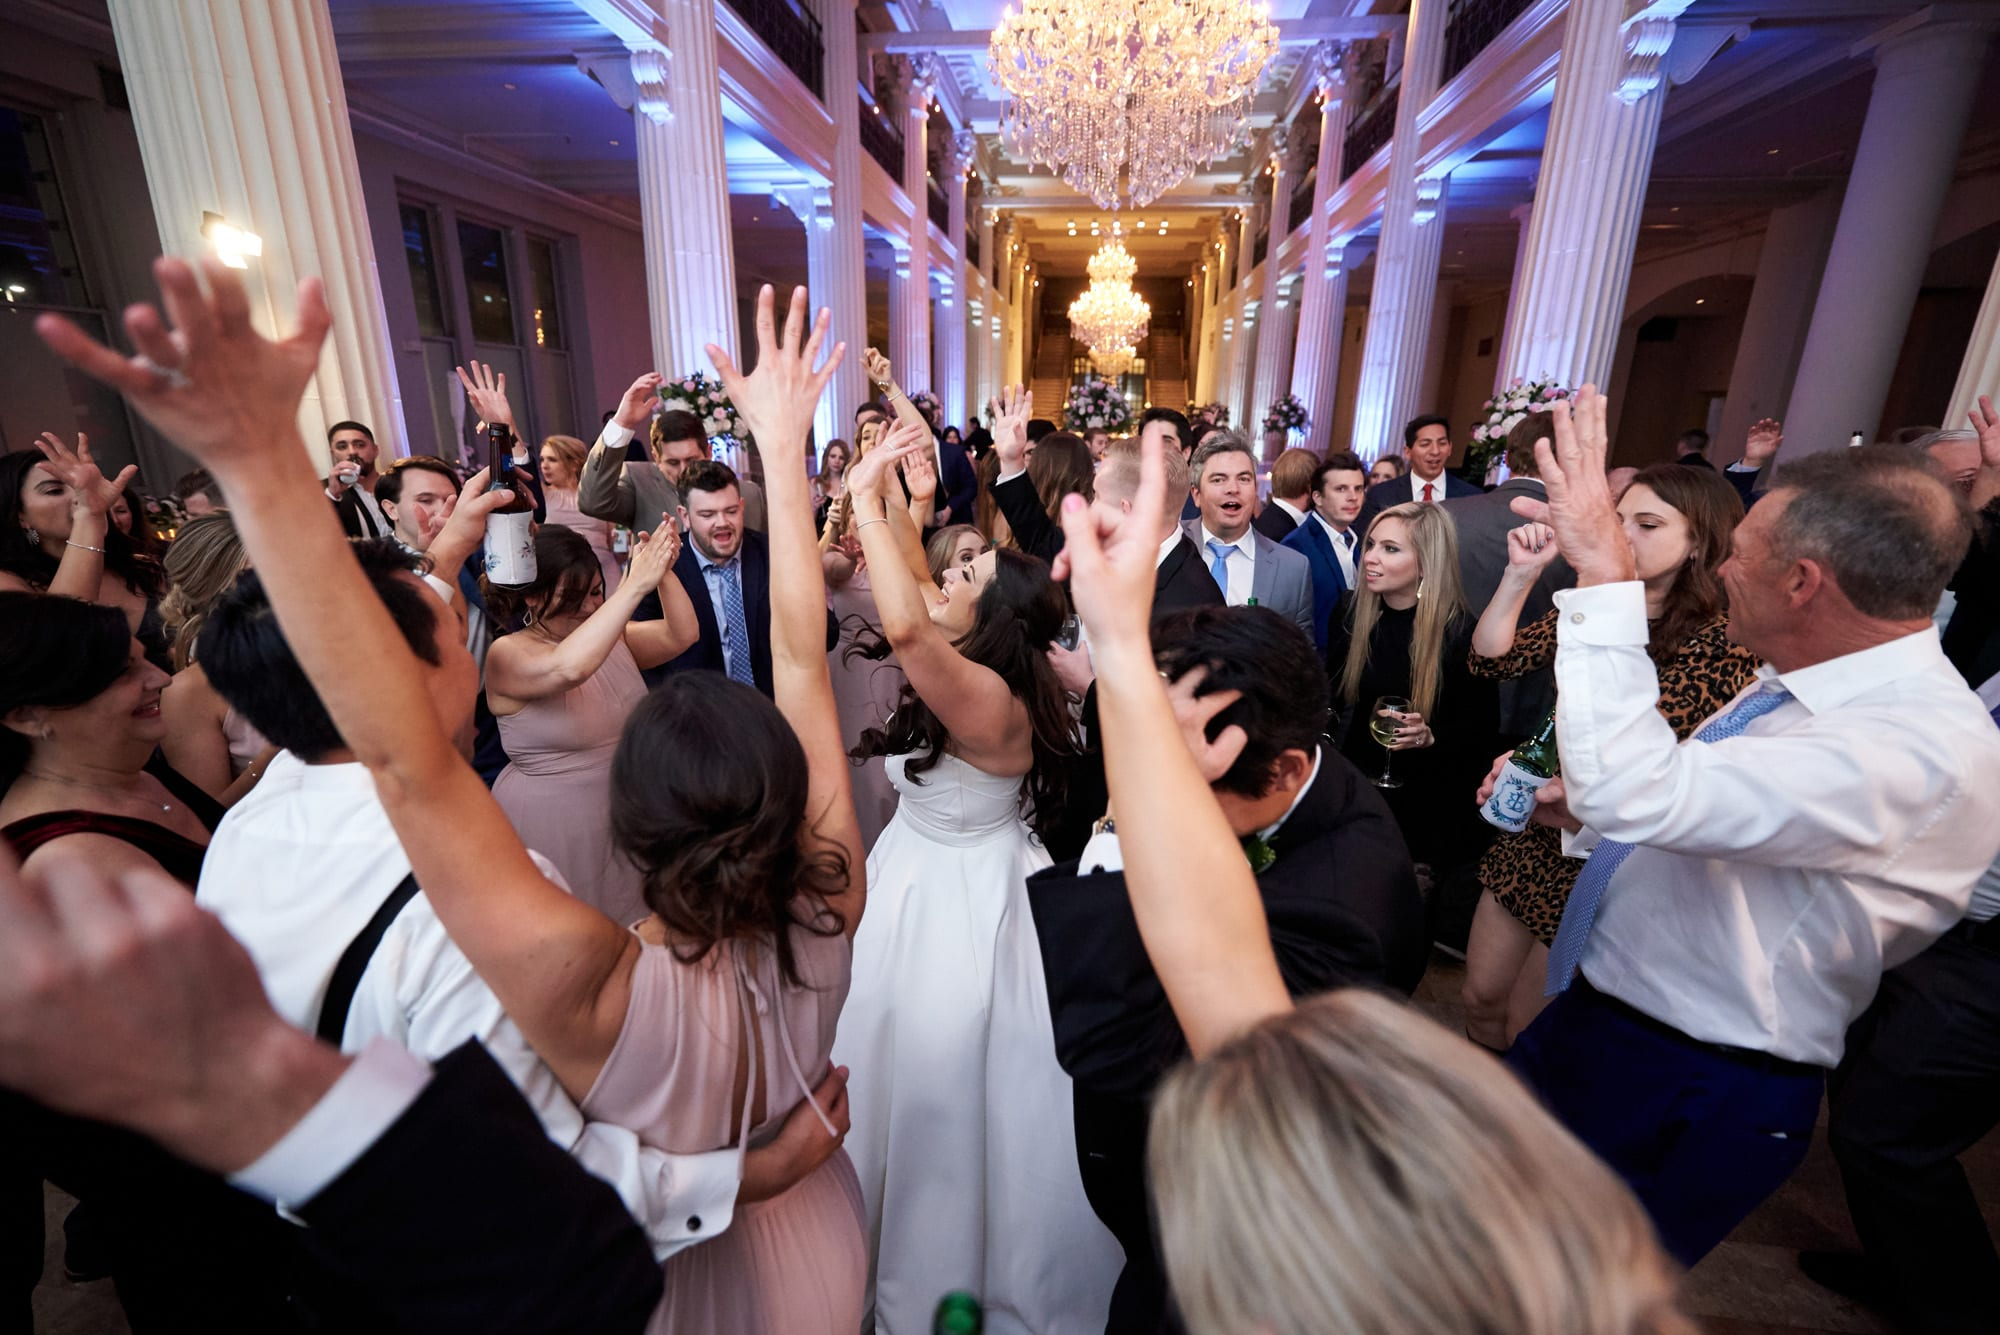 The Right Things to Look for in a Reception Venue by The Knot